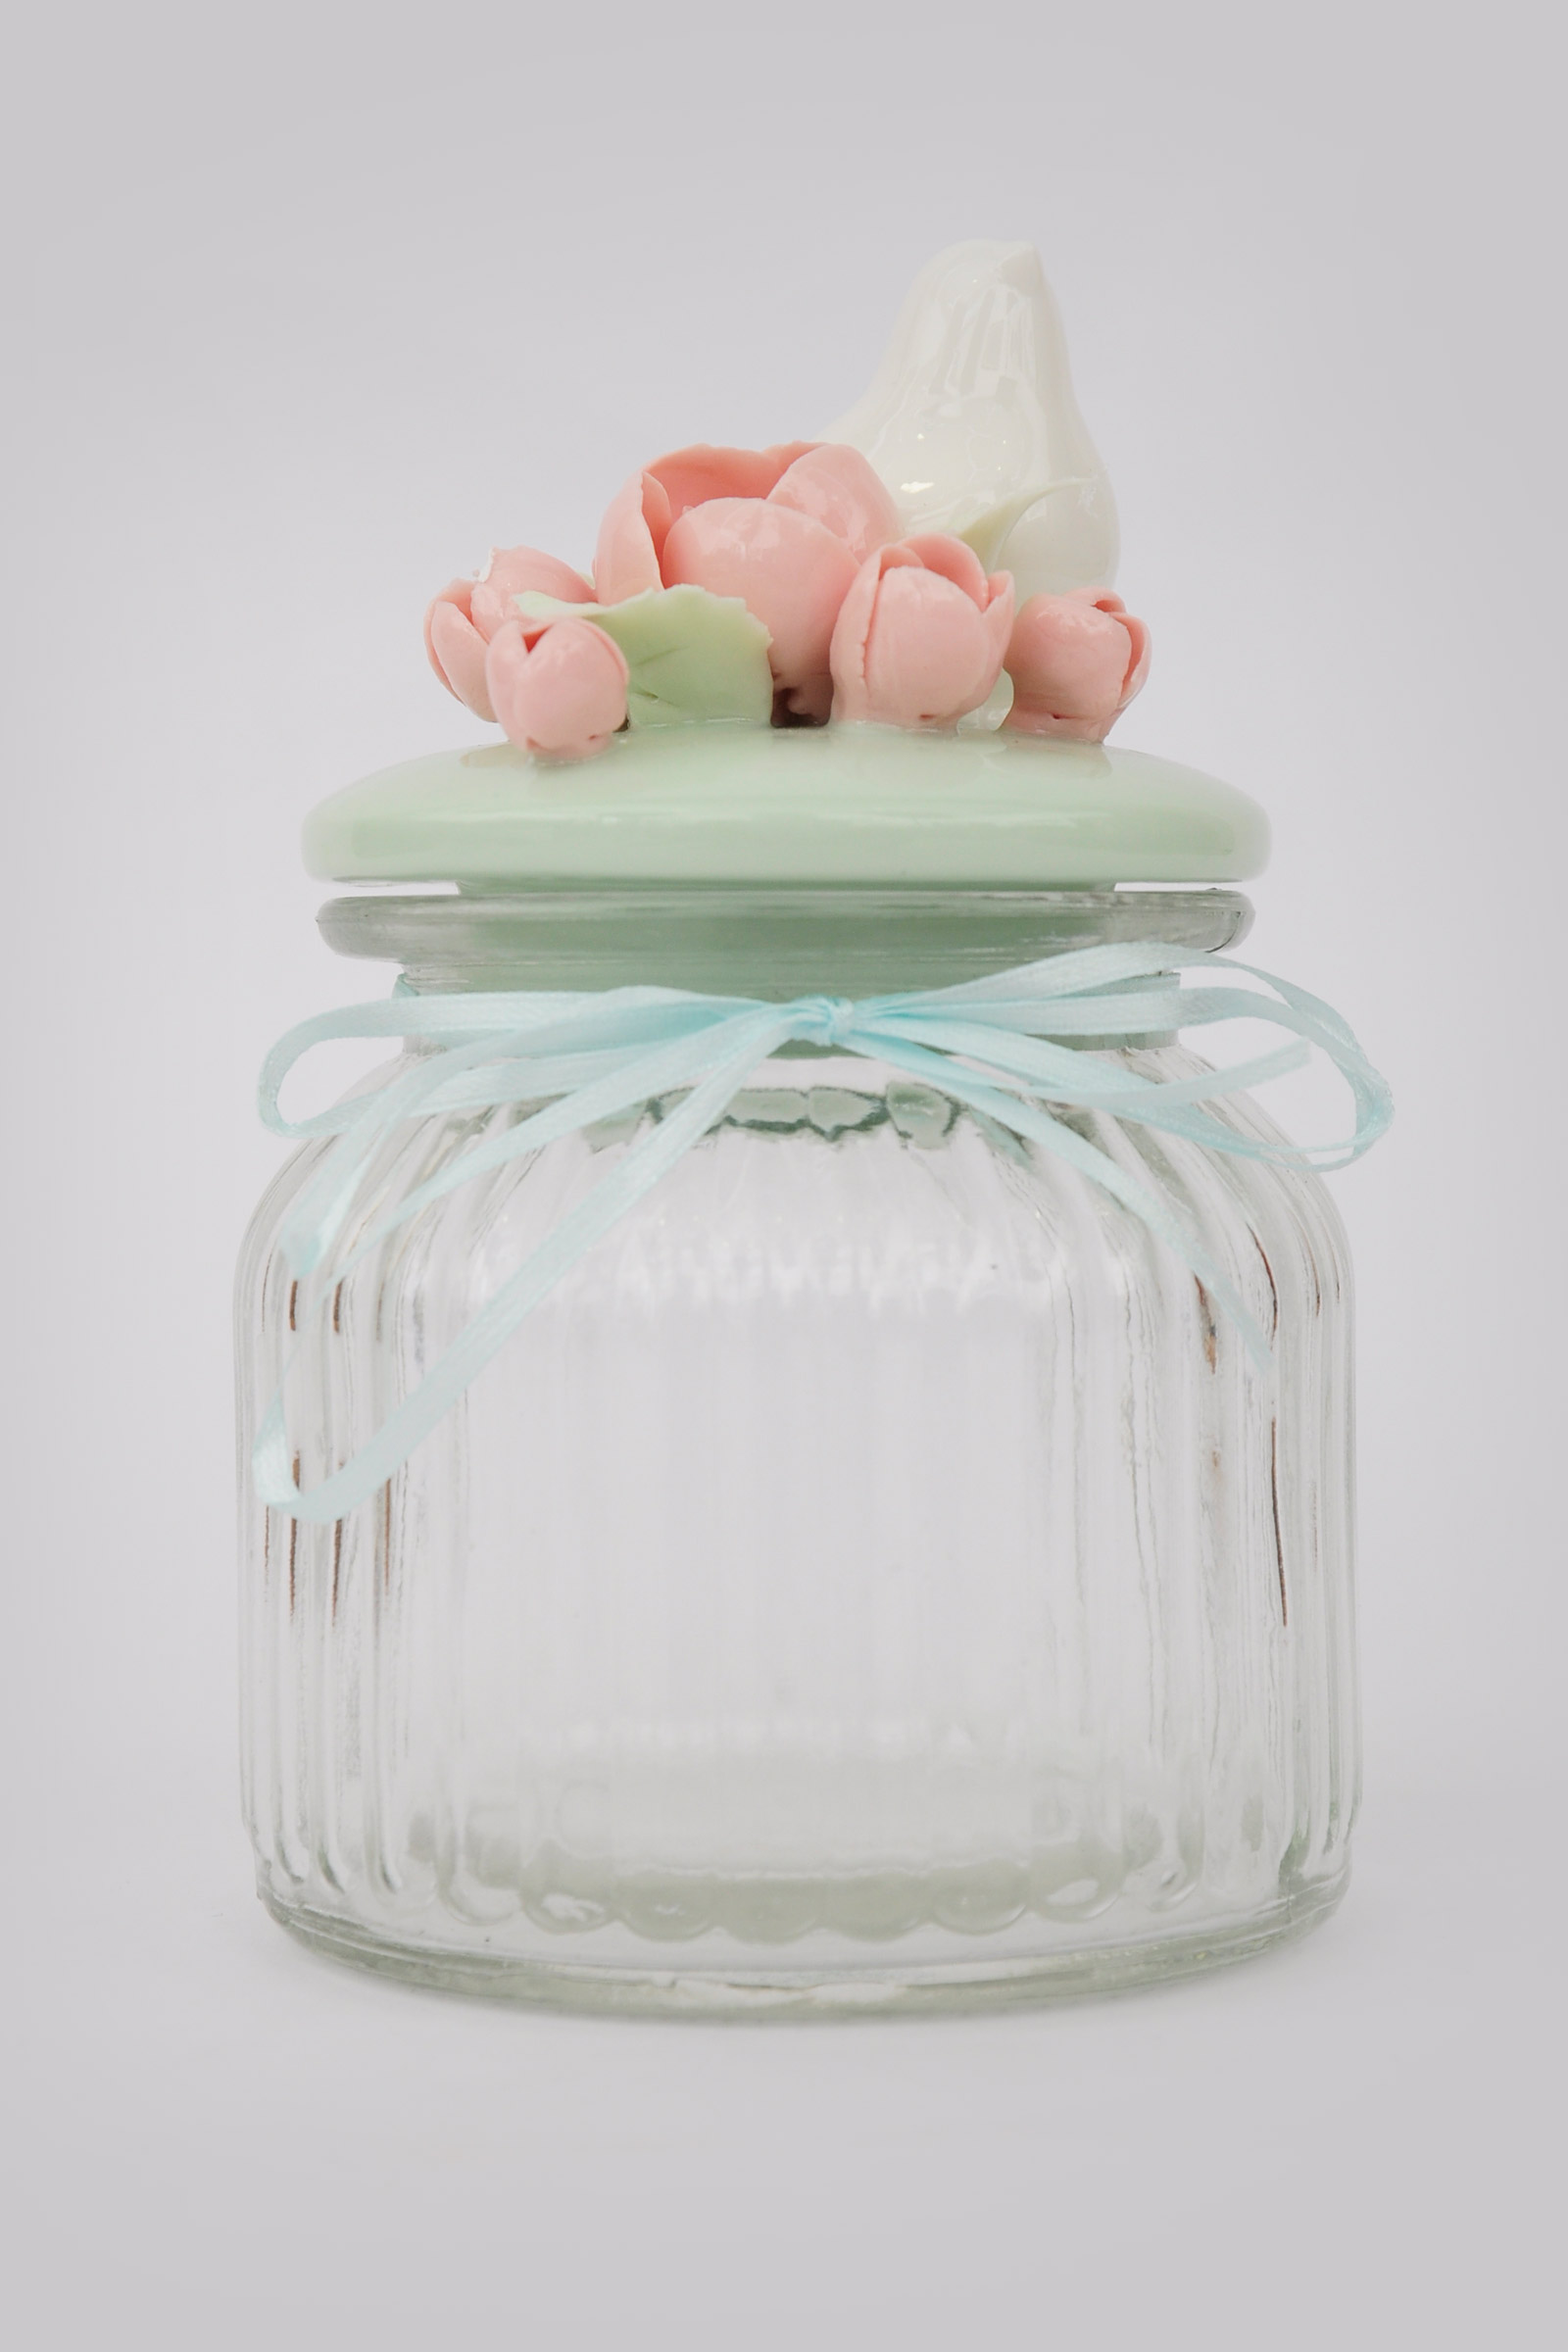 Rose delight jar